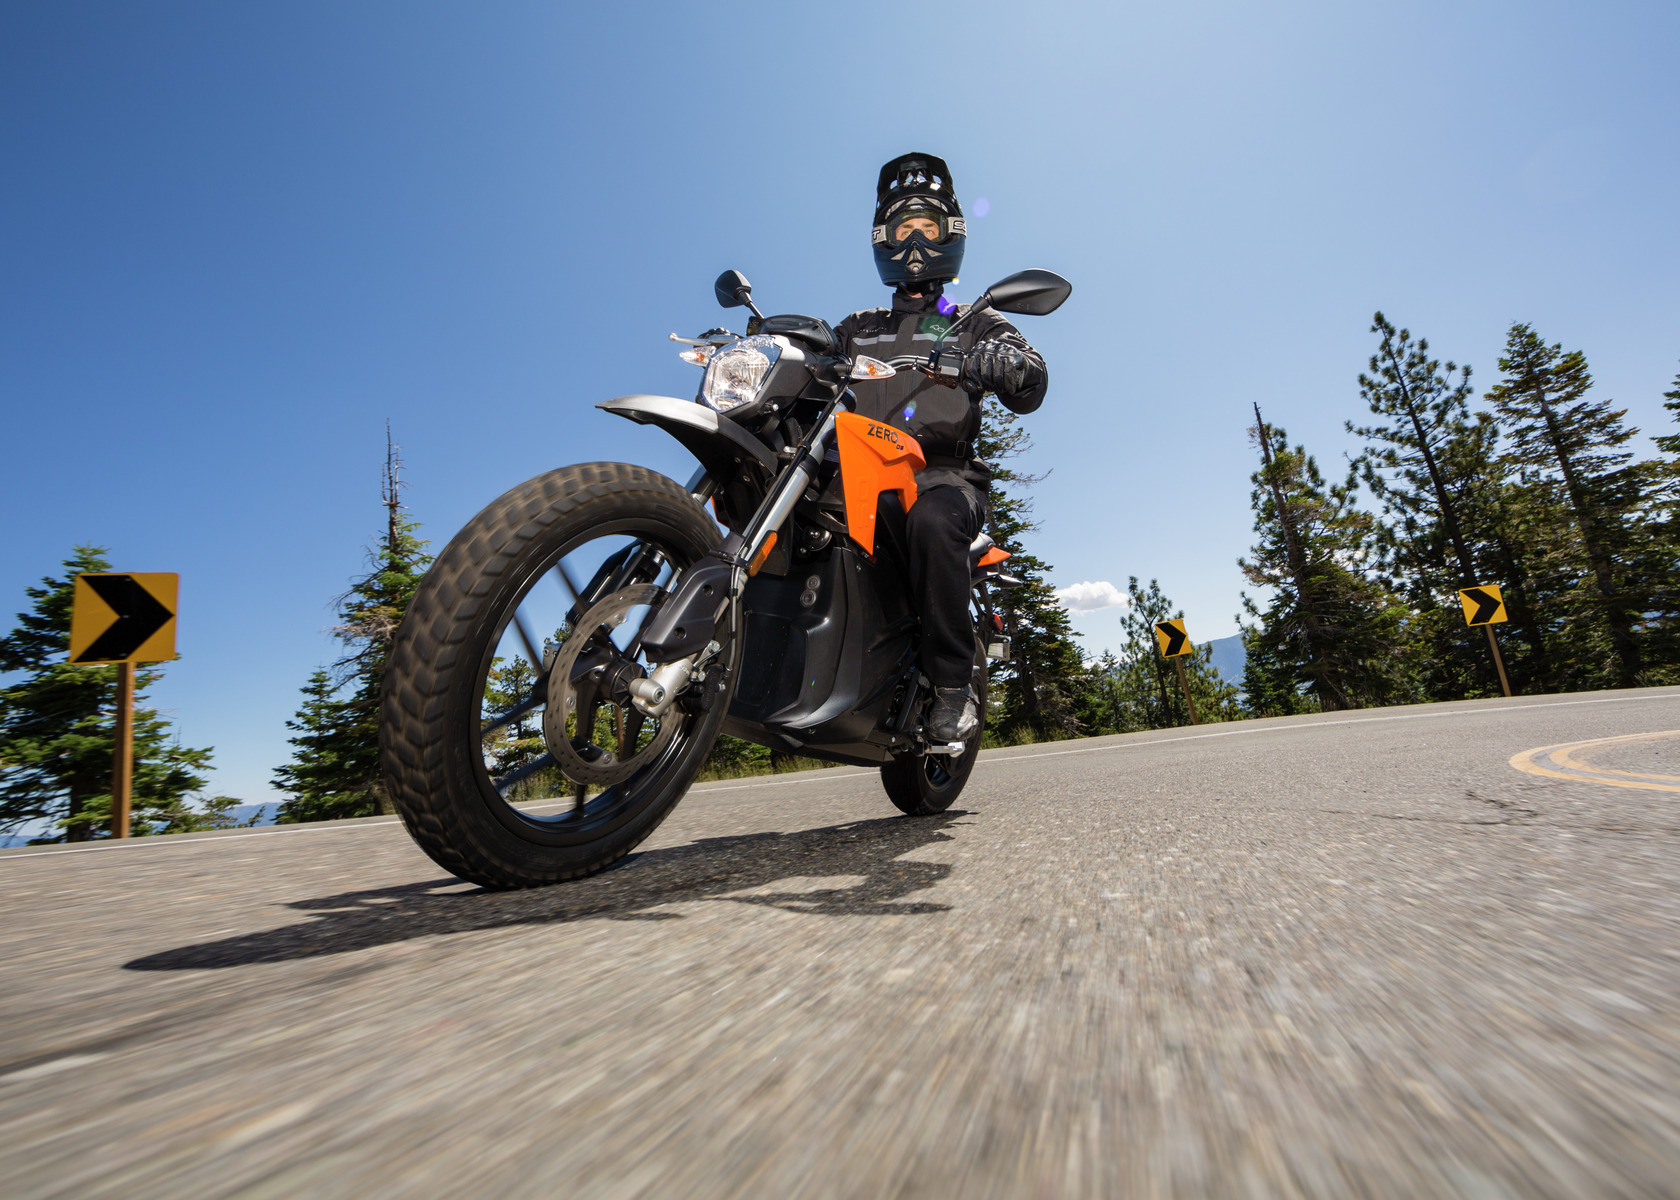 2016 Zero DS Electric Motorcycle: